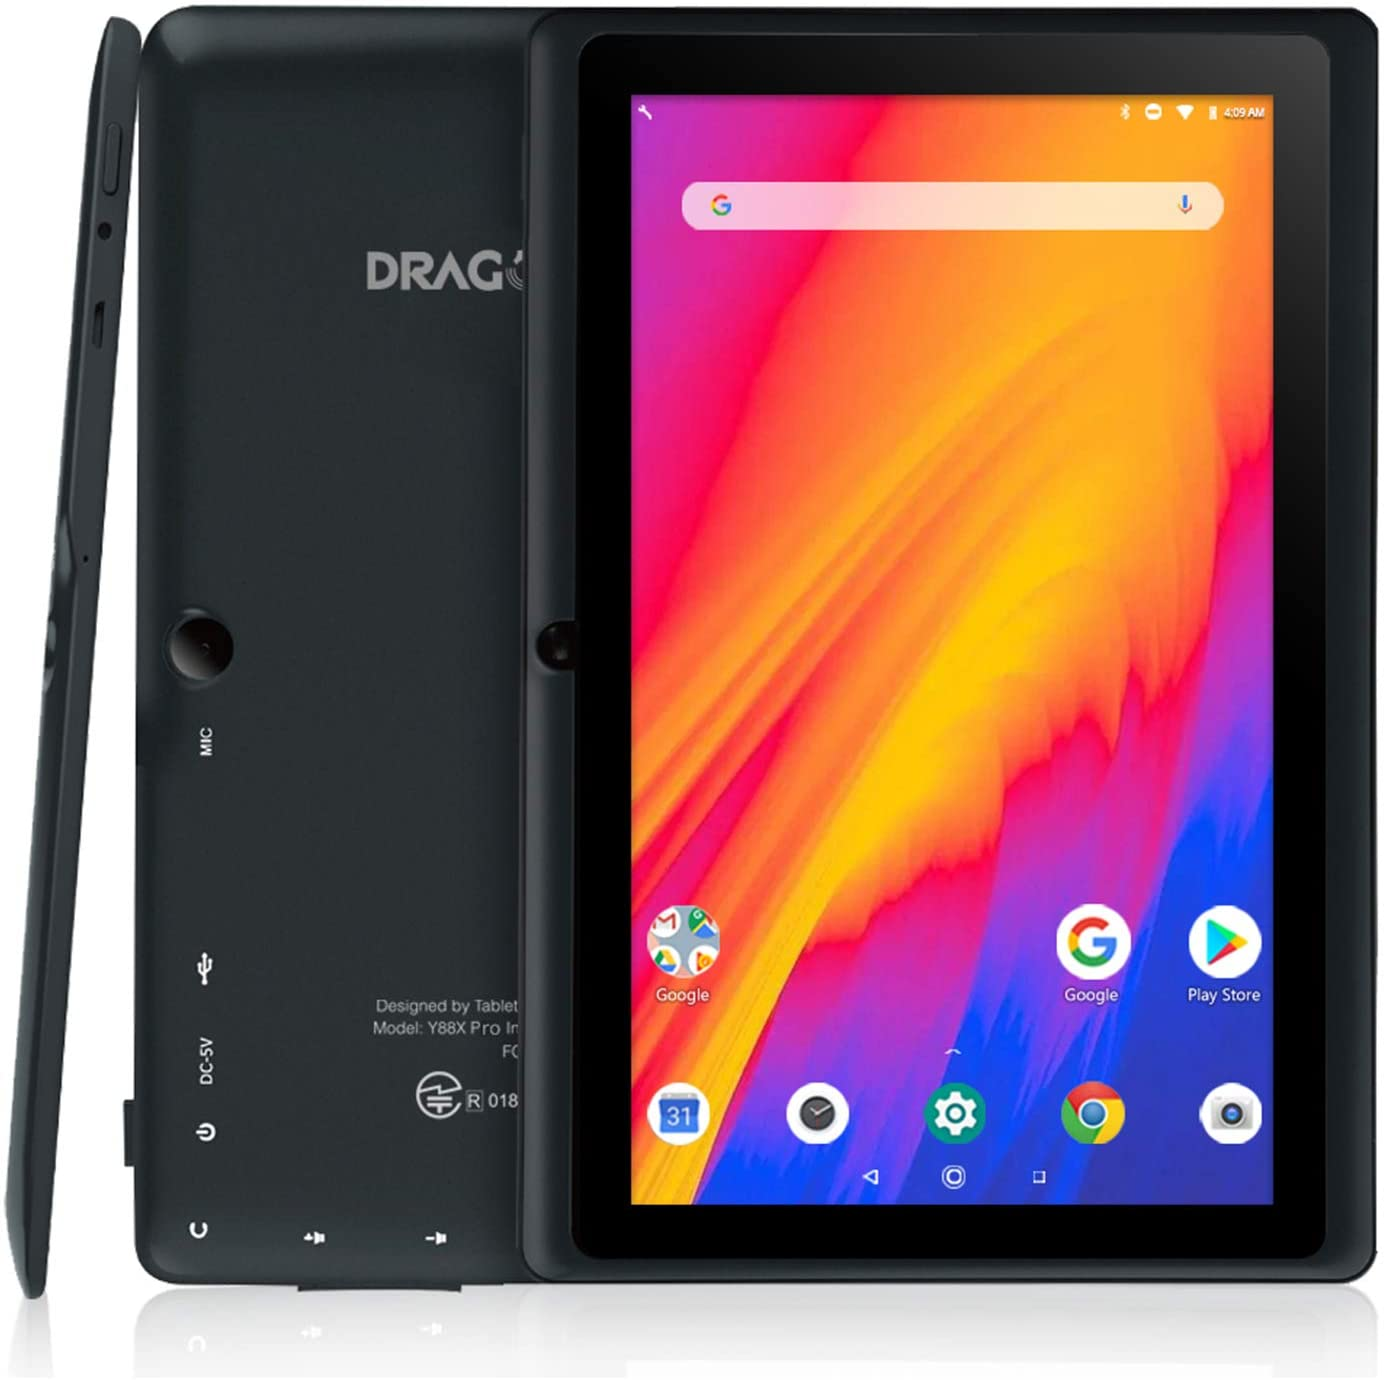 Drachen Touch 7 zoll Tablet Android 9,0 Pie Tabletten Quad-Core 2GB RAM 16GB Wifi Tablet IPS HD Display Dual Kamera